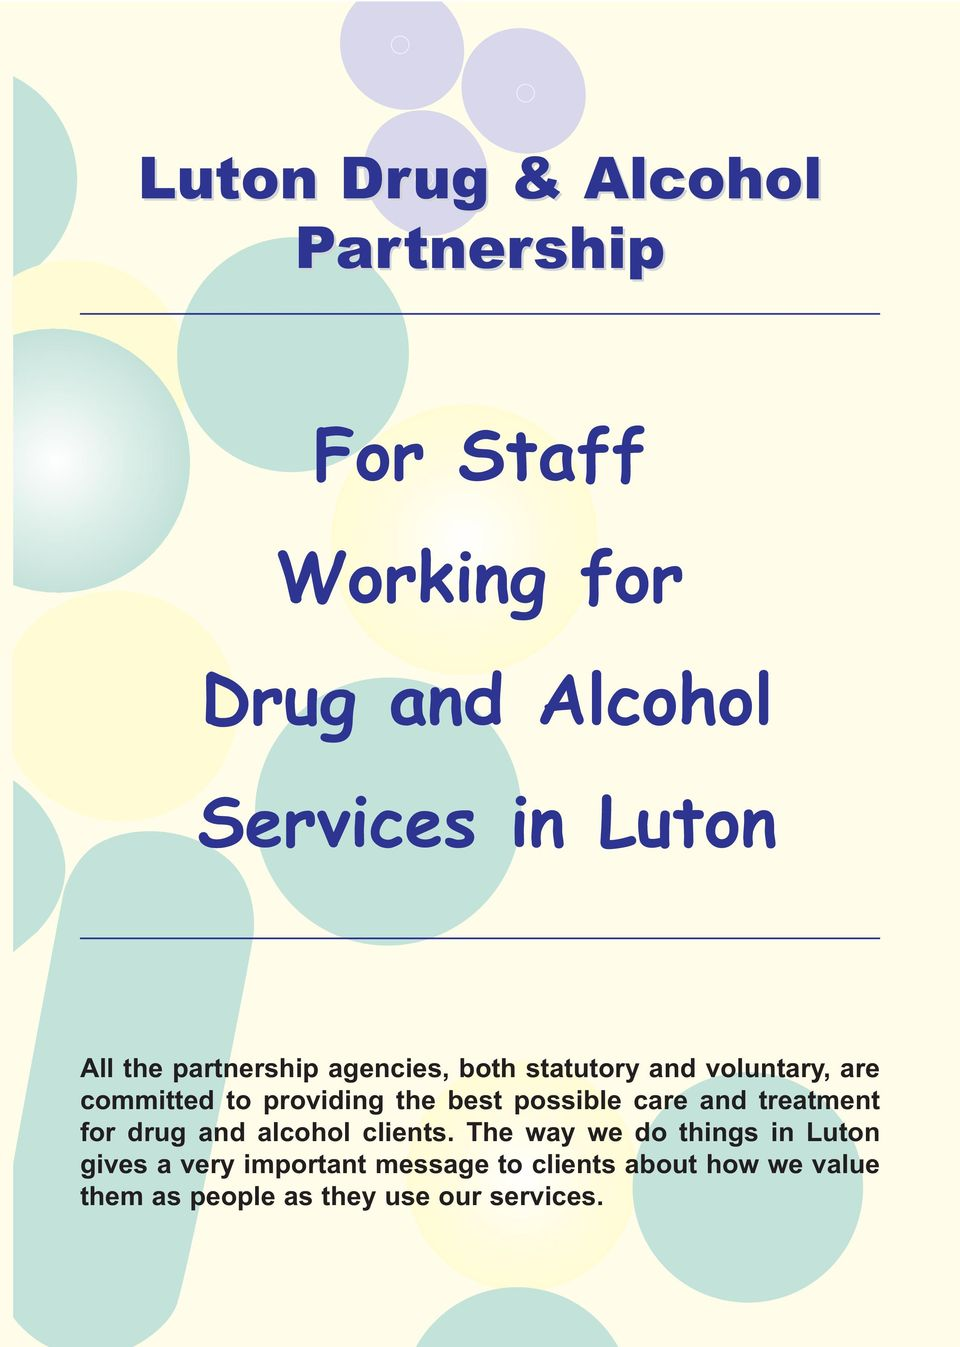 possible care and treatment for drug and alcohol clients.